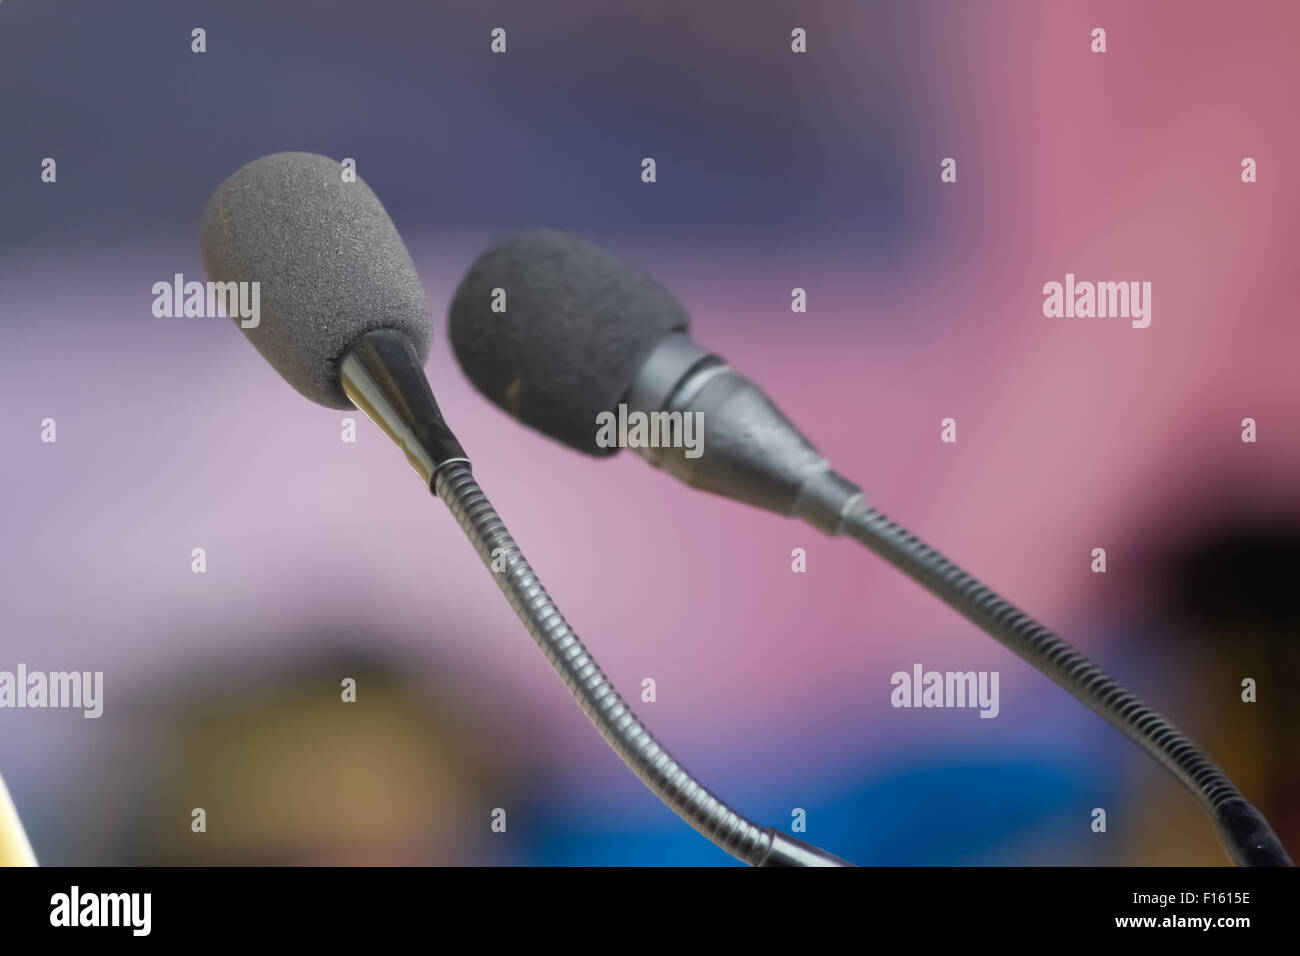 Vocal microphone - Stock Image